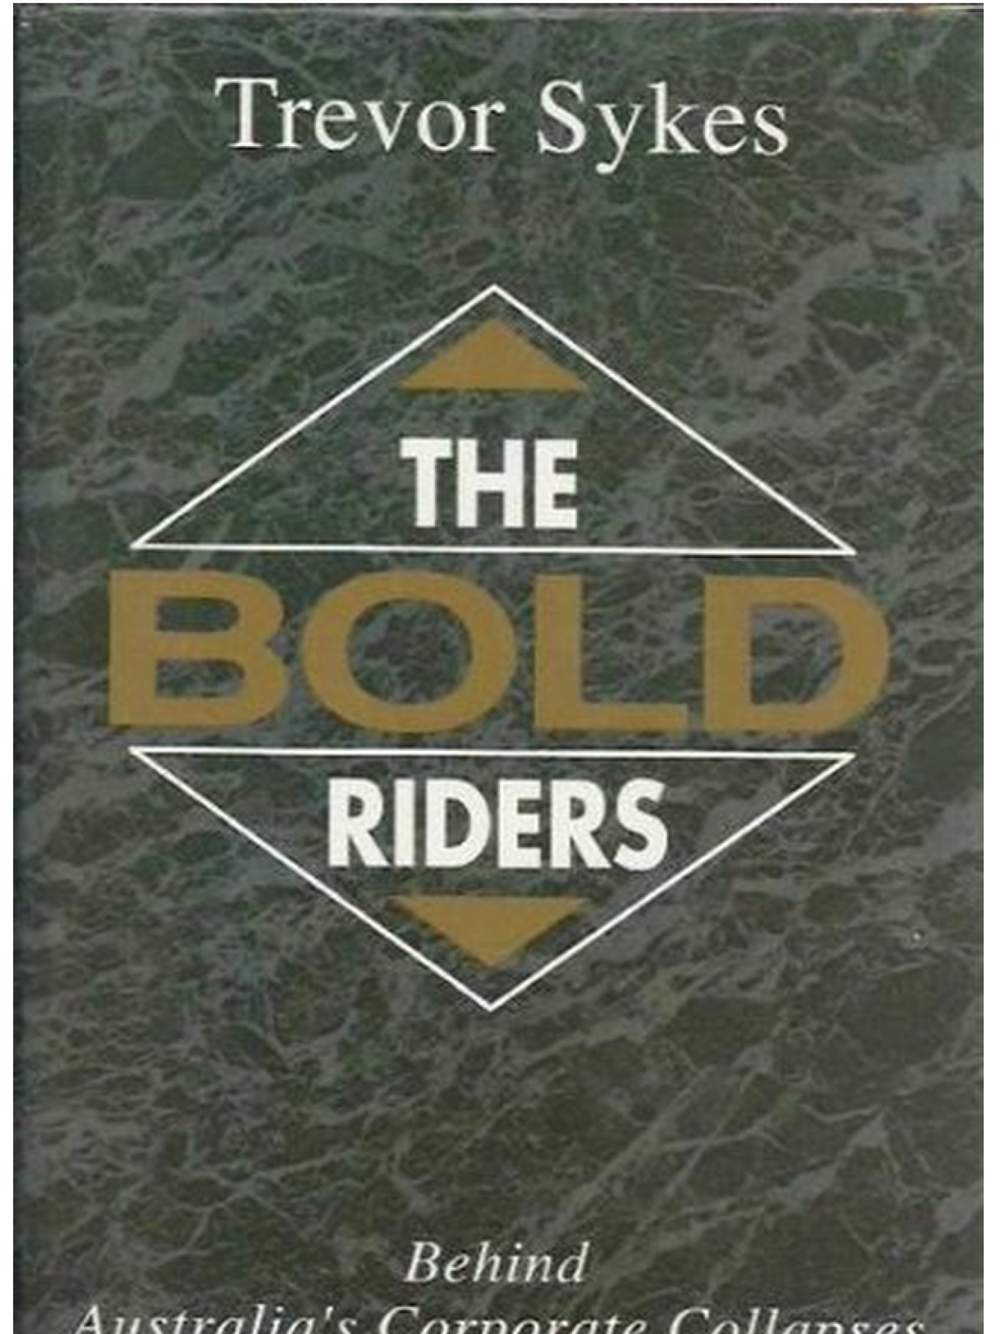 The Bold Riders: Behind Australia's Corporate Collapses. Trevor Sykes 1995